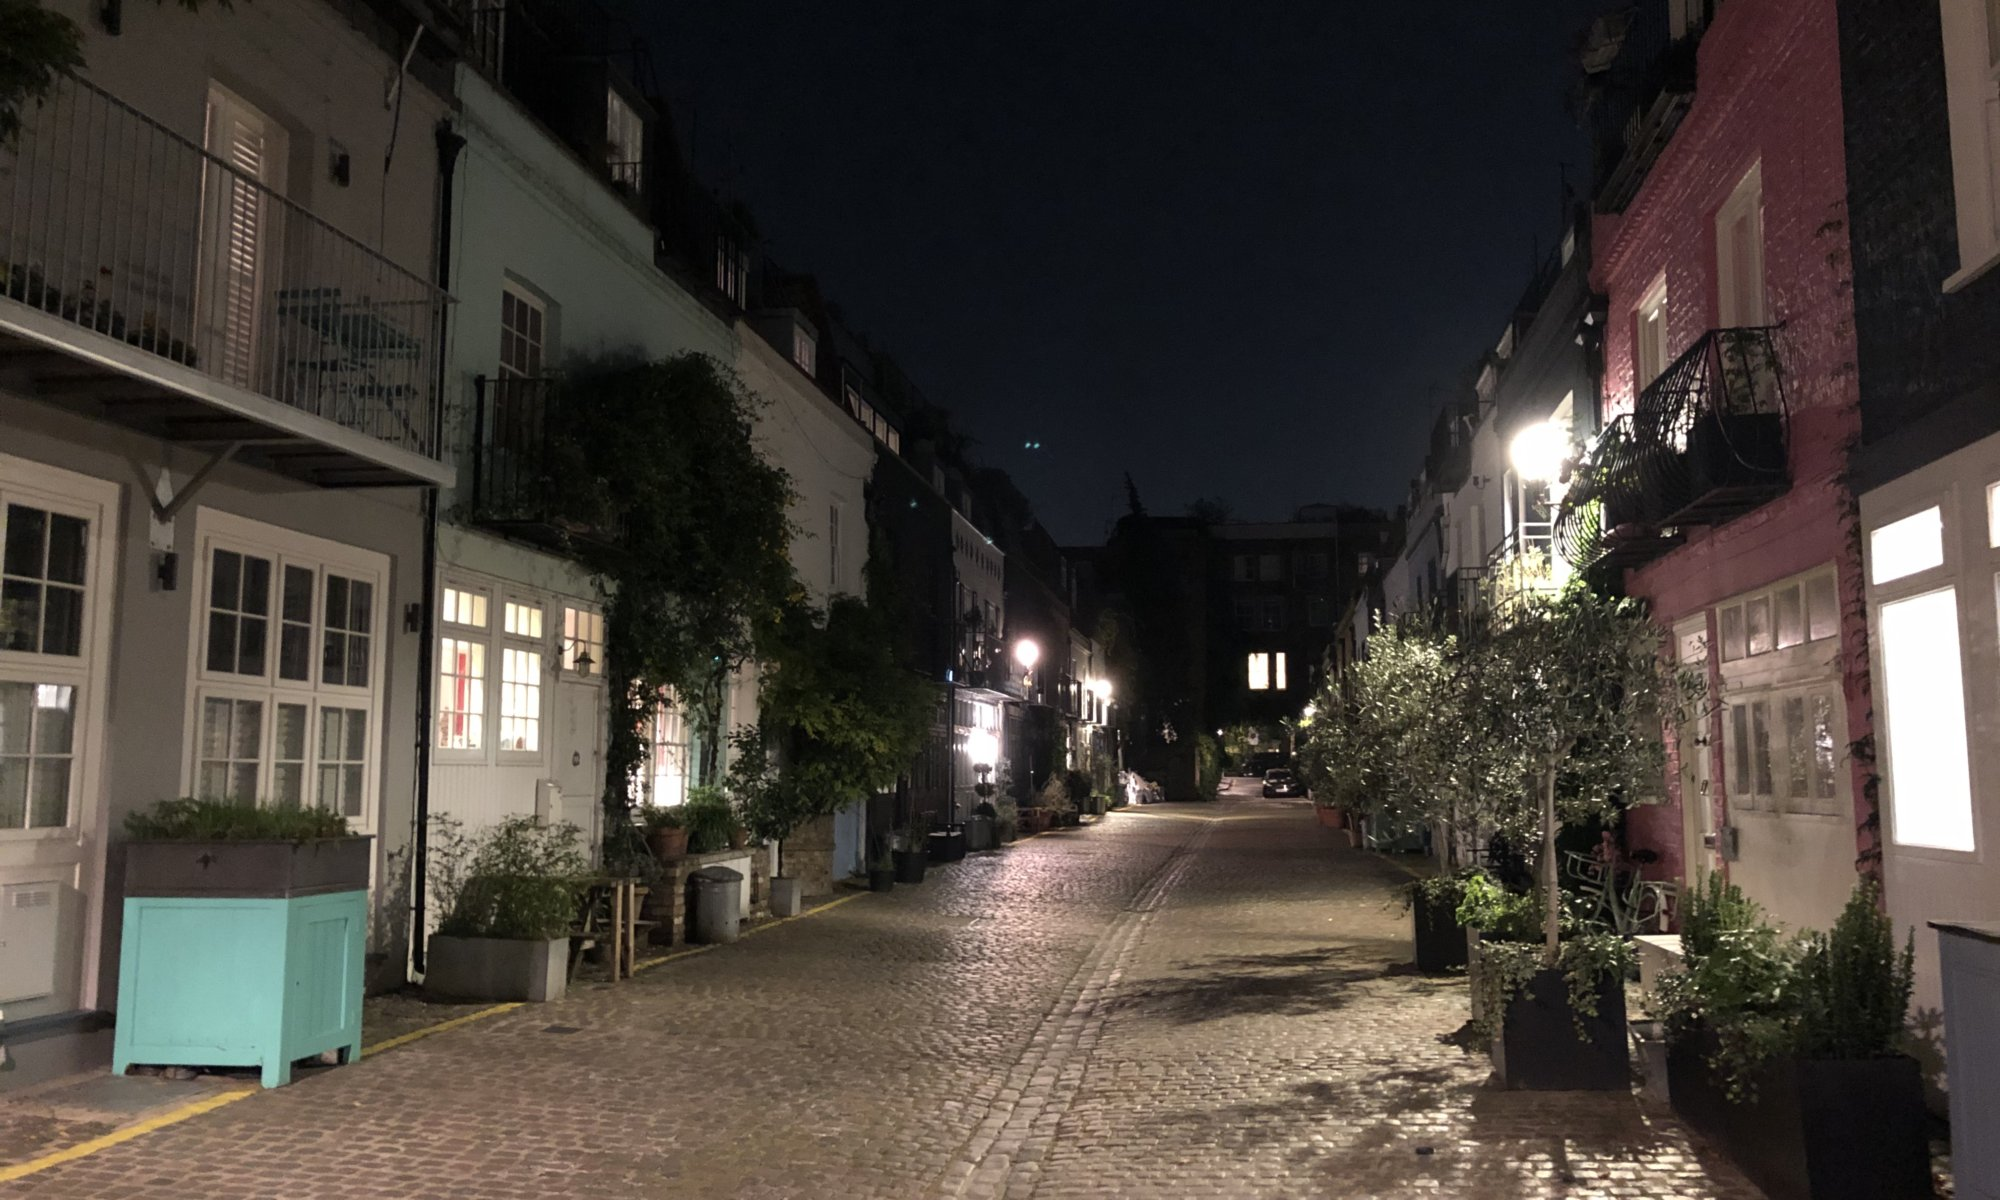 St. Luke's Mews, Notting Hill, London